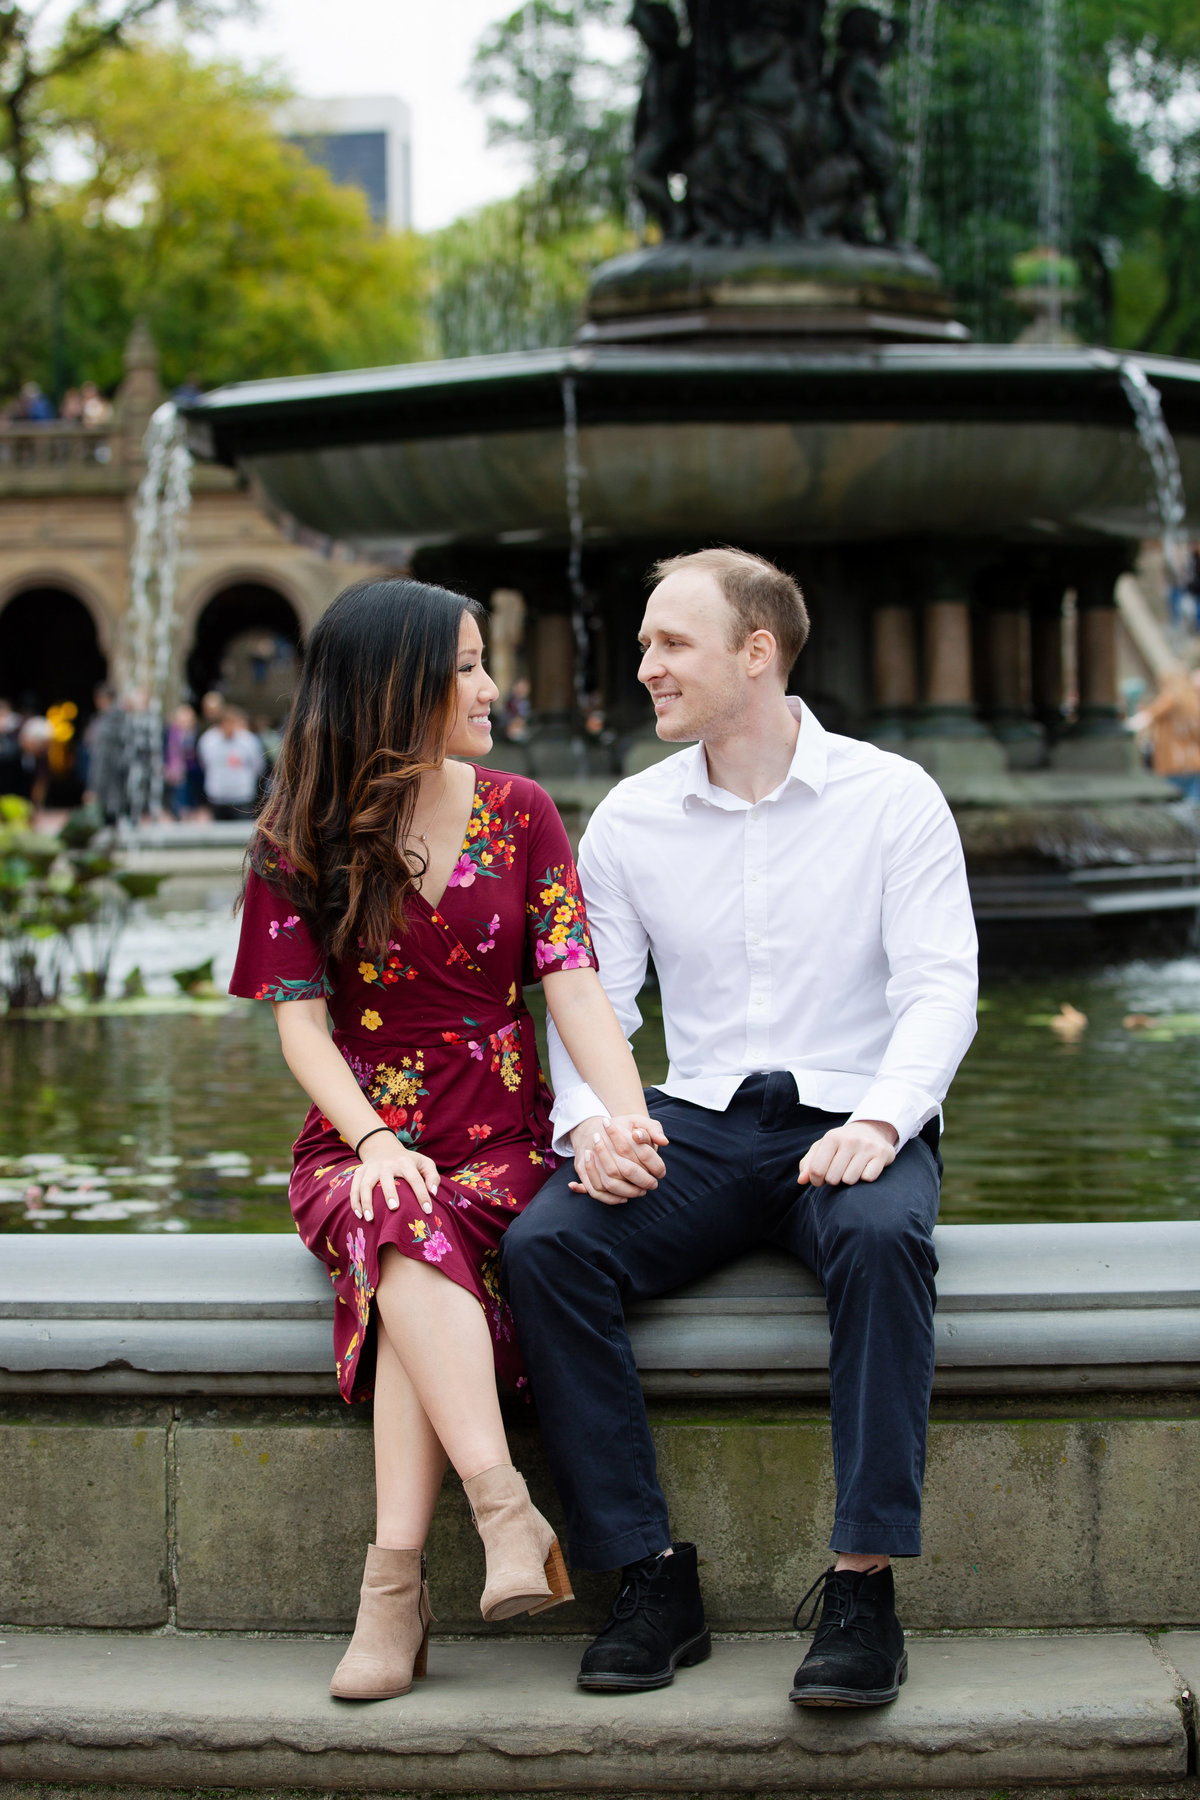 Central-Park-Engagement-Mariya-Stecklair-Photography-20